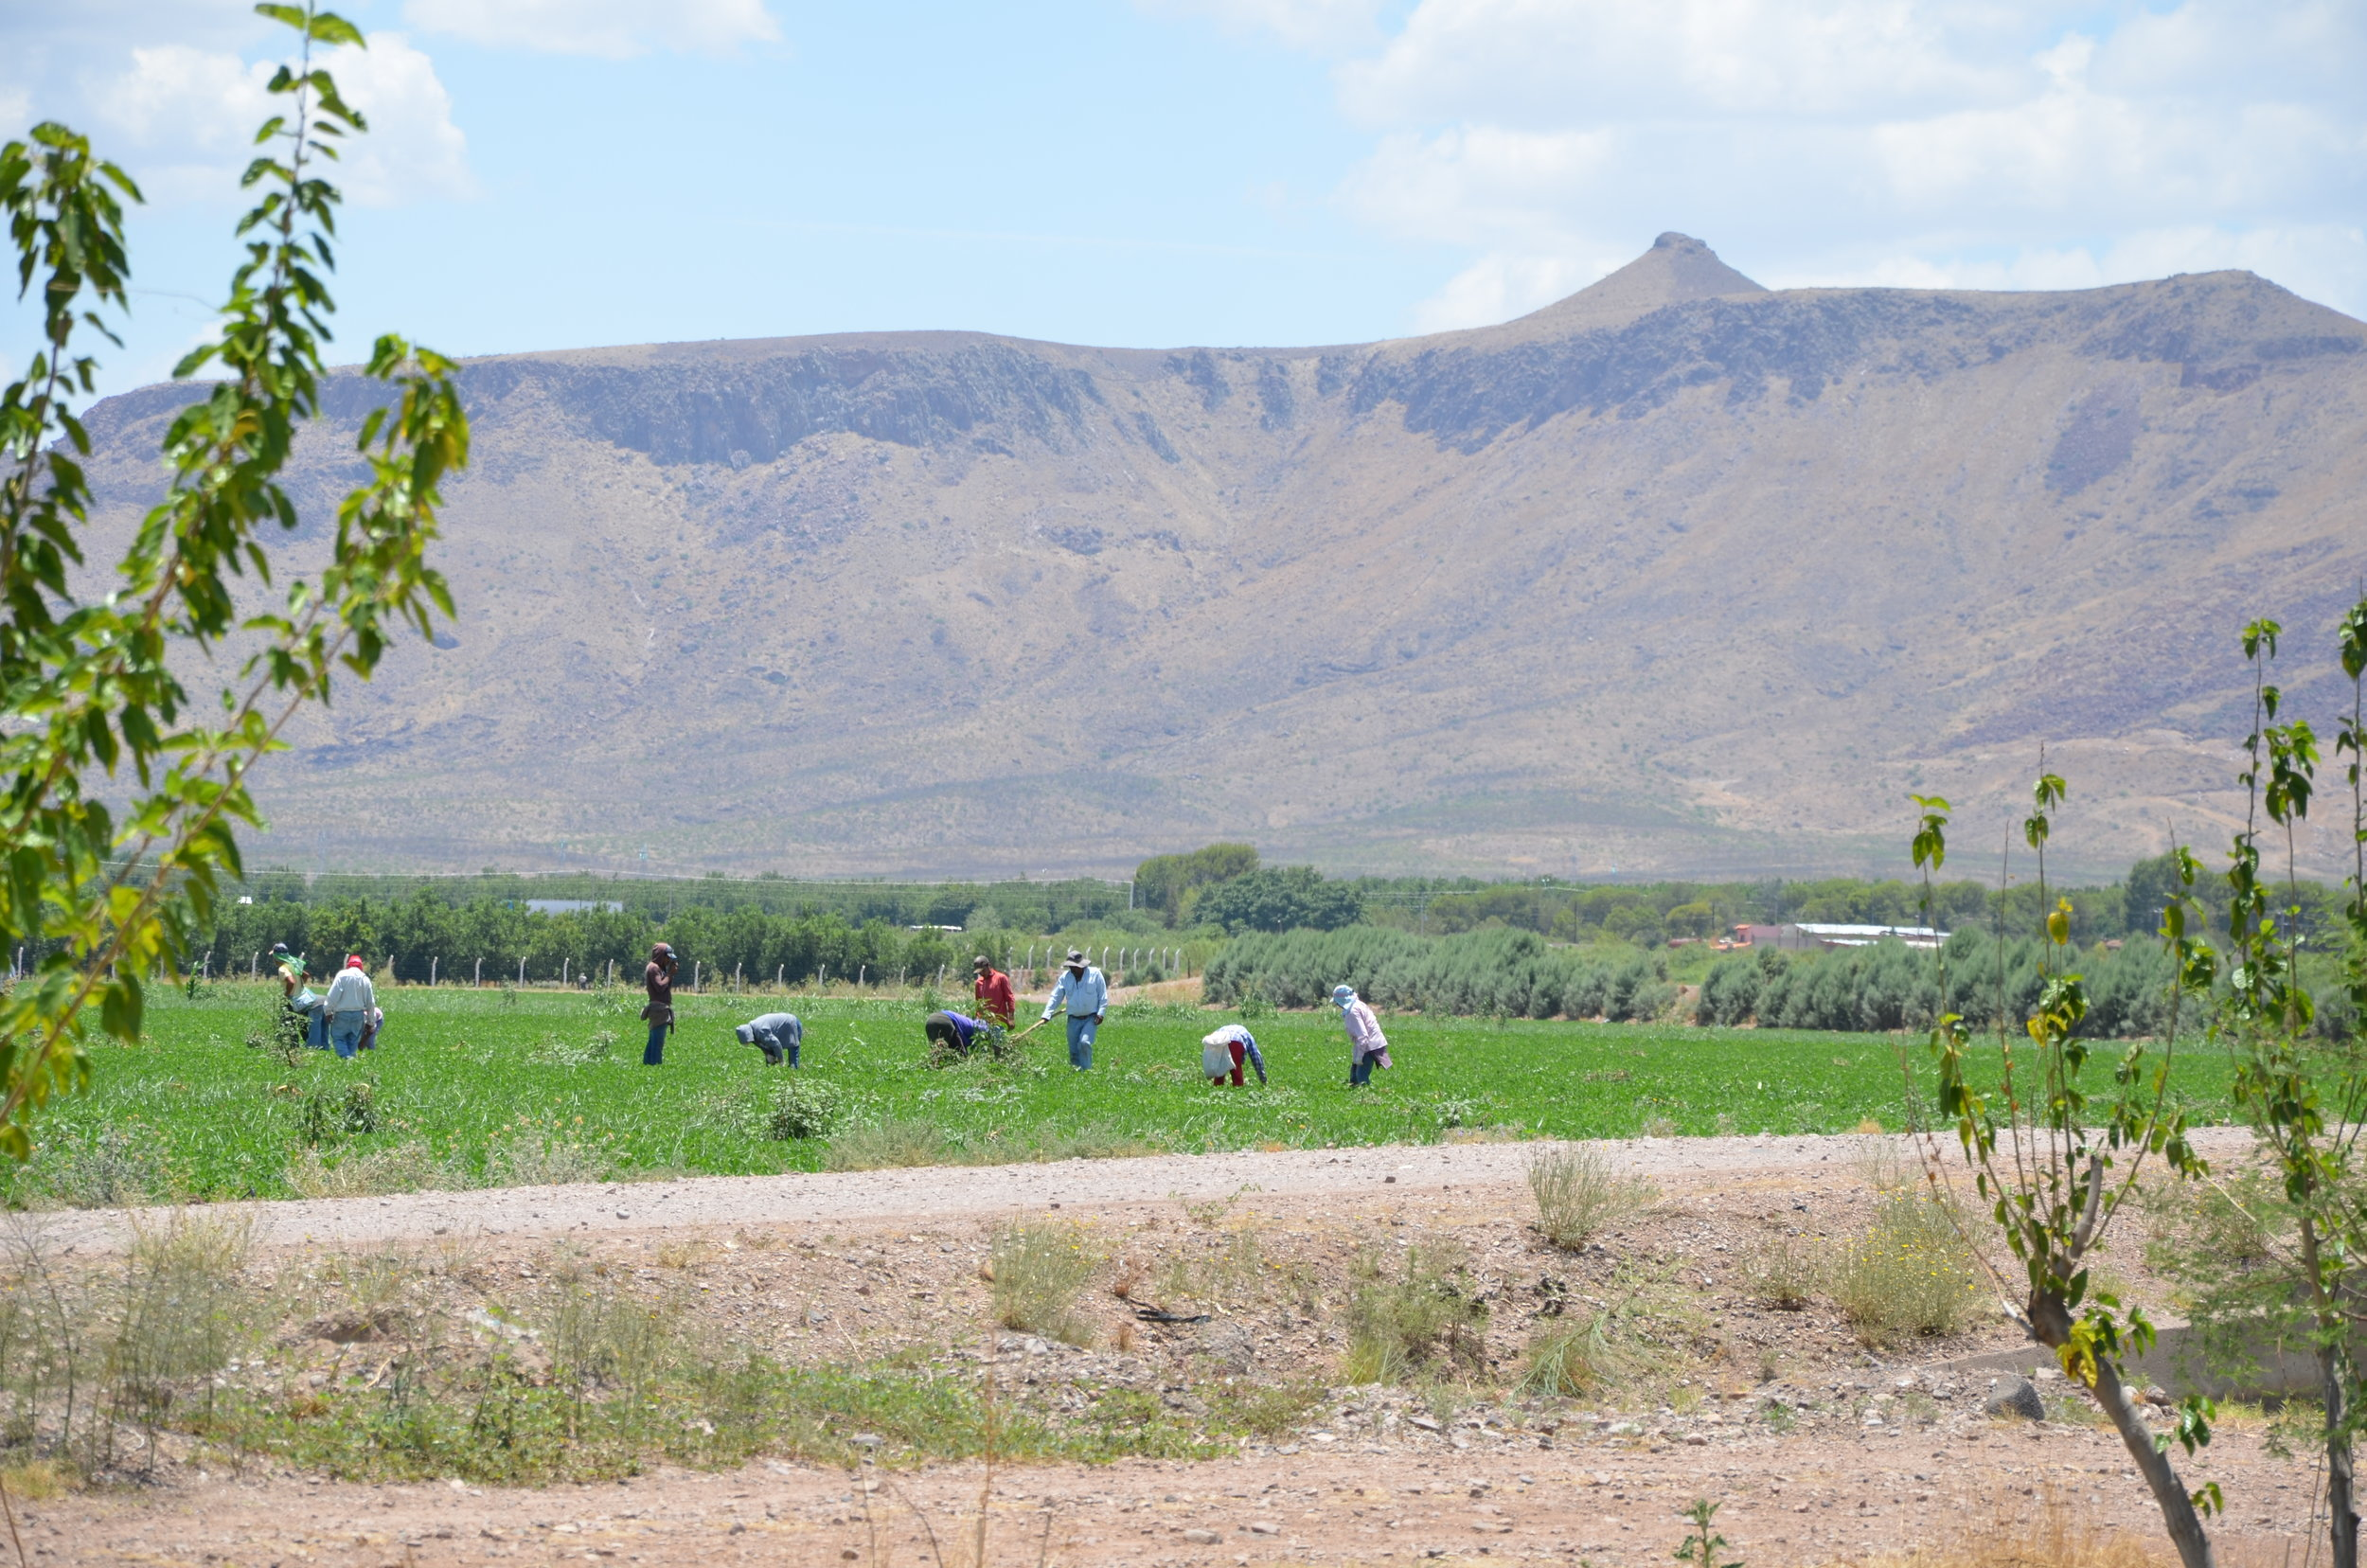 Workers in a field near Meoqui, Chihuahua. July 2014.